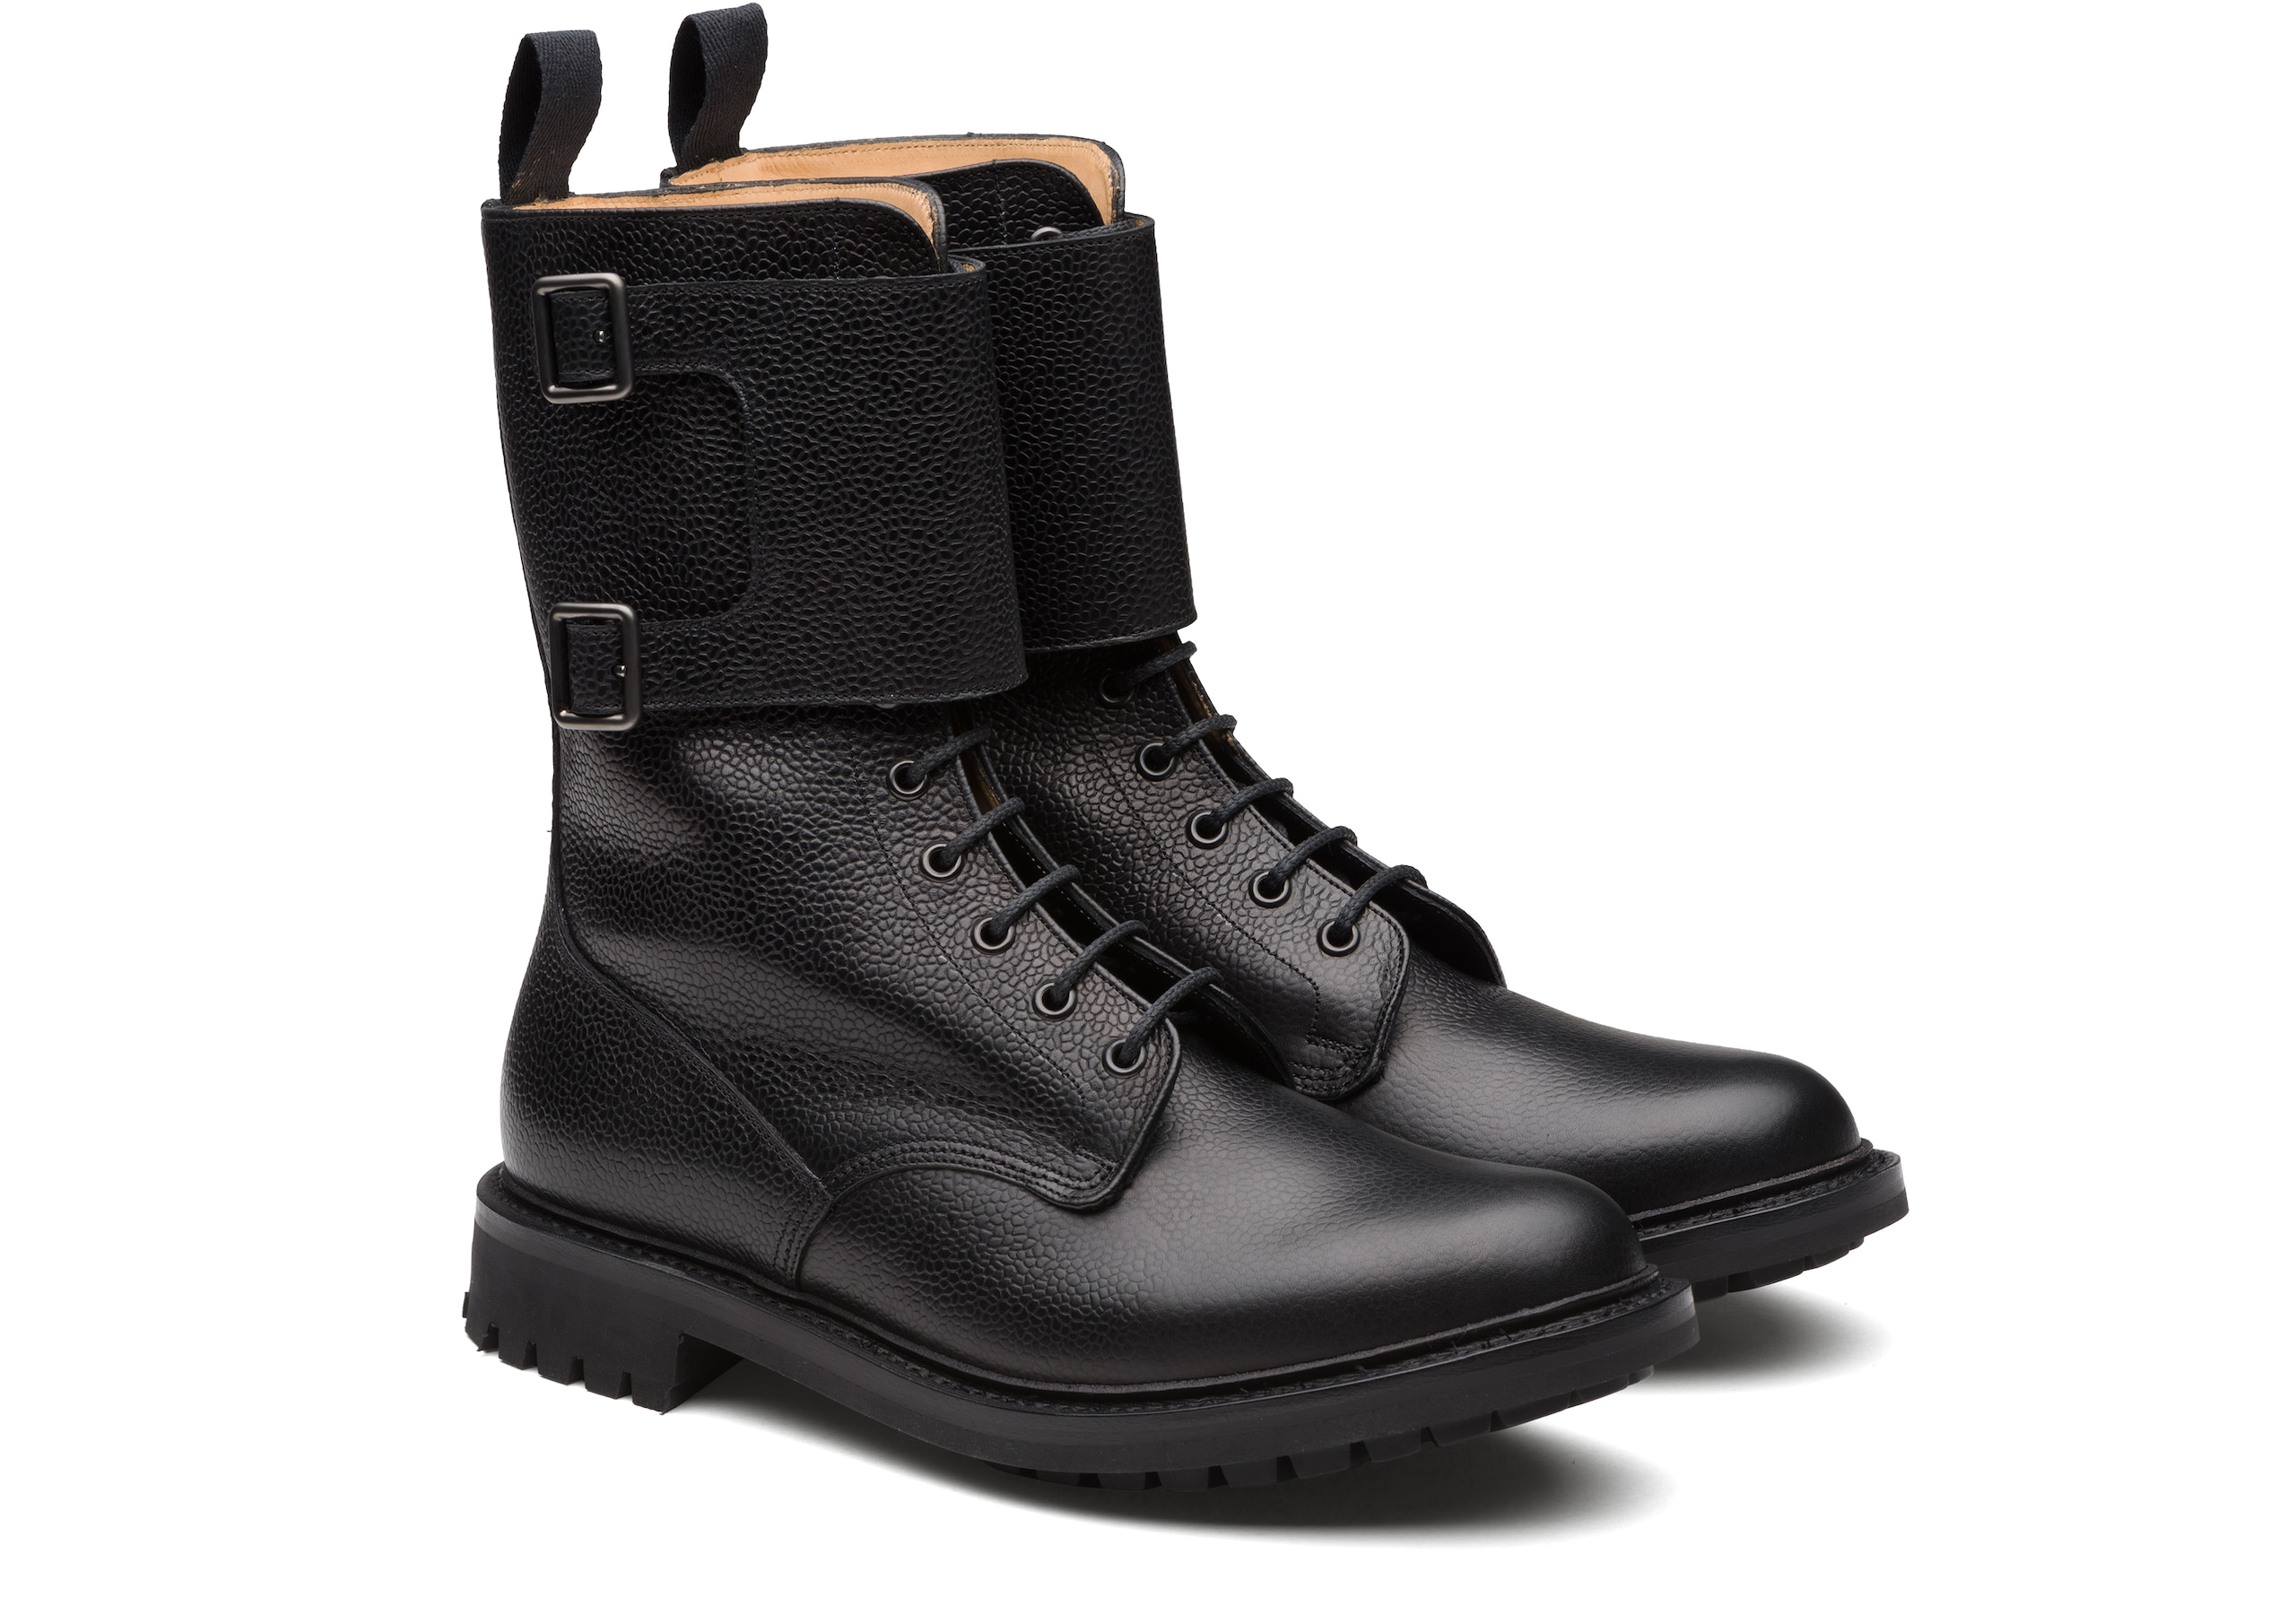 Mc kay Church's Lace up and Monk Boot Black